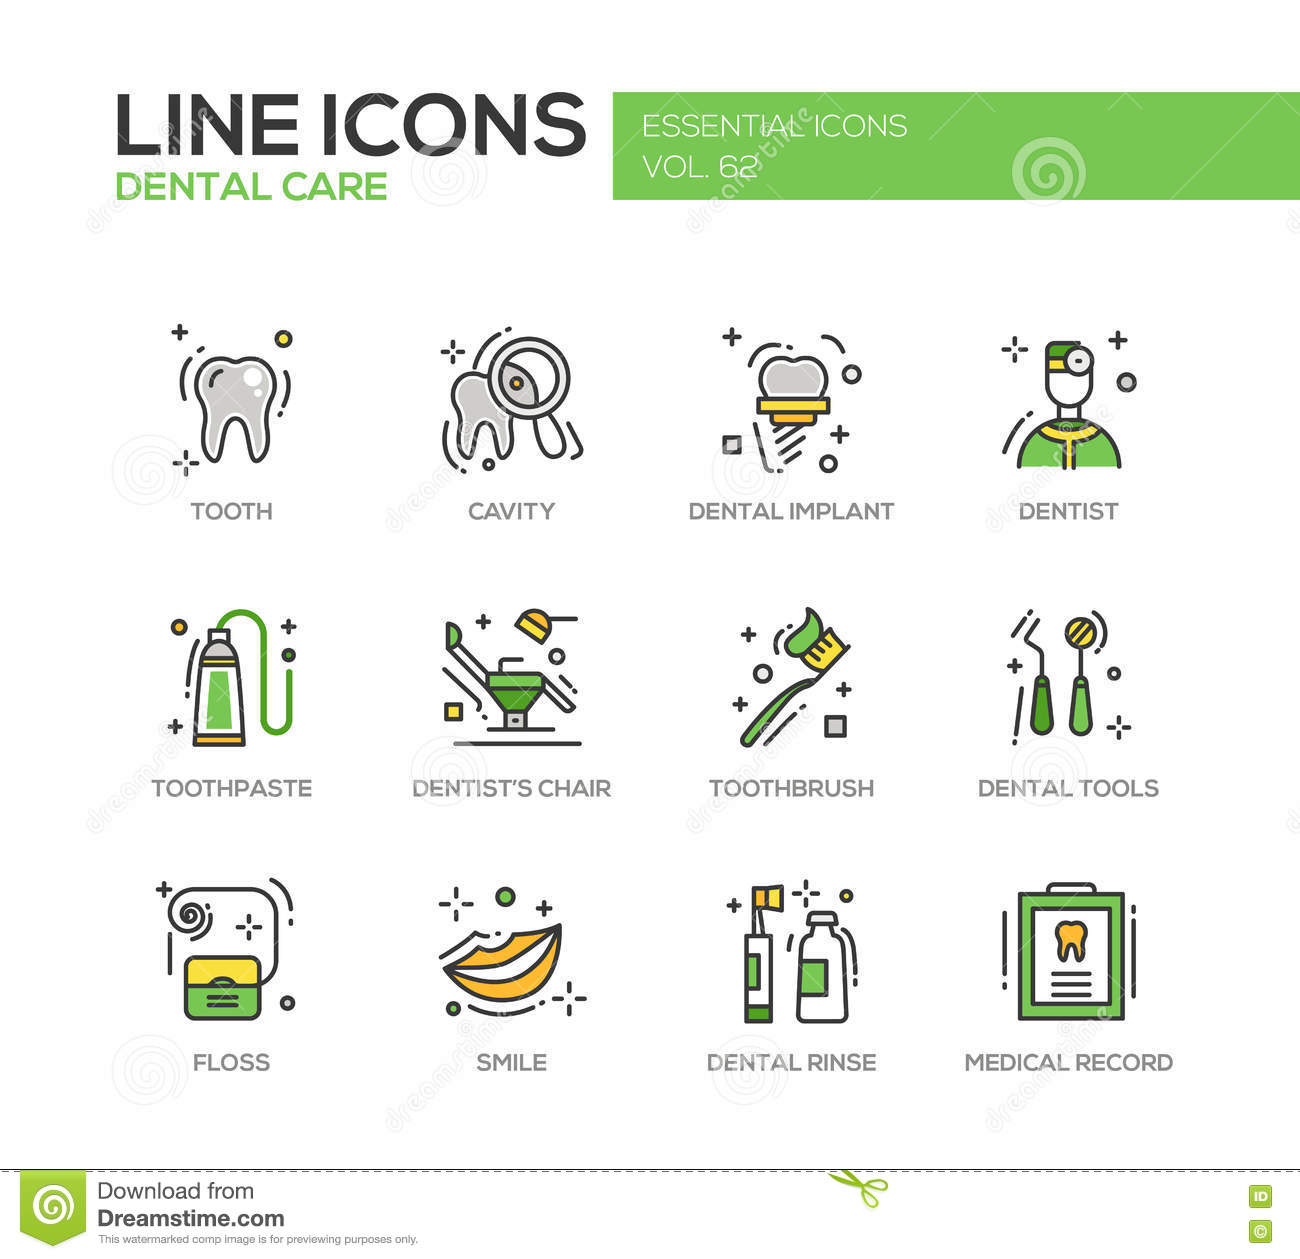 dental-care-line-design-icons-set-modern-vector-pictograms-tooth-cavity-implant-toothpaste-dentist-chair-toothbrust-tools-76879144.jpg